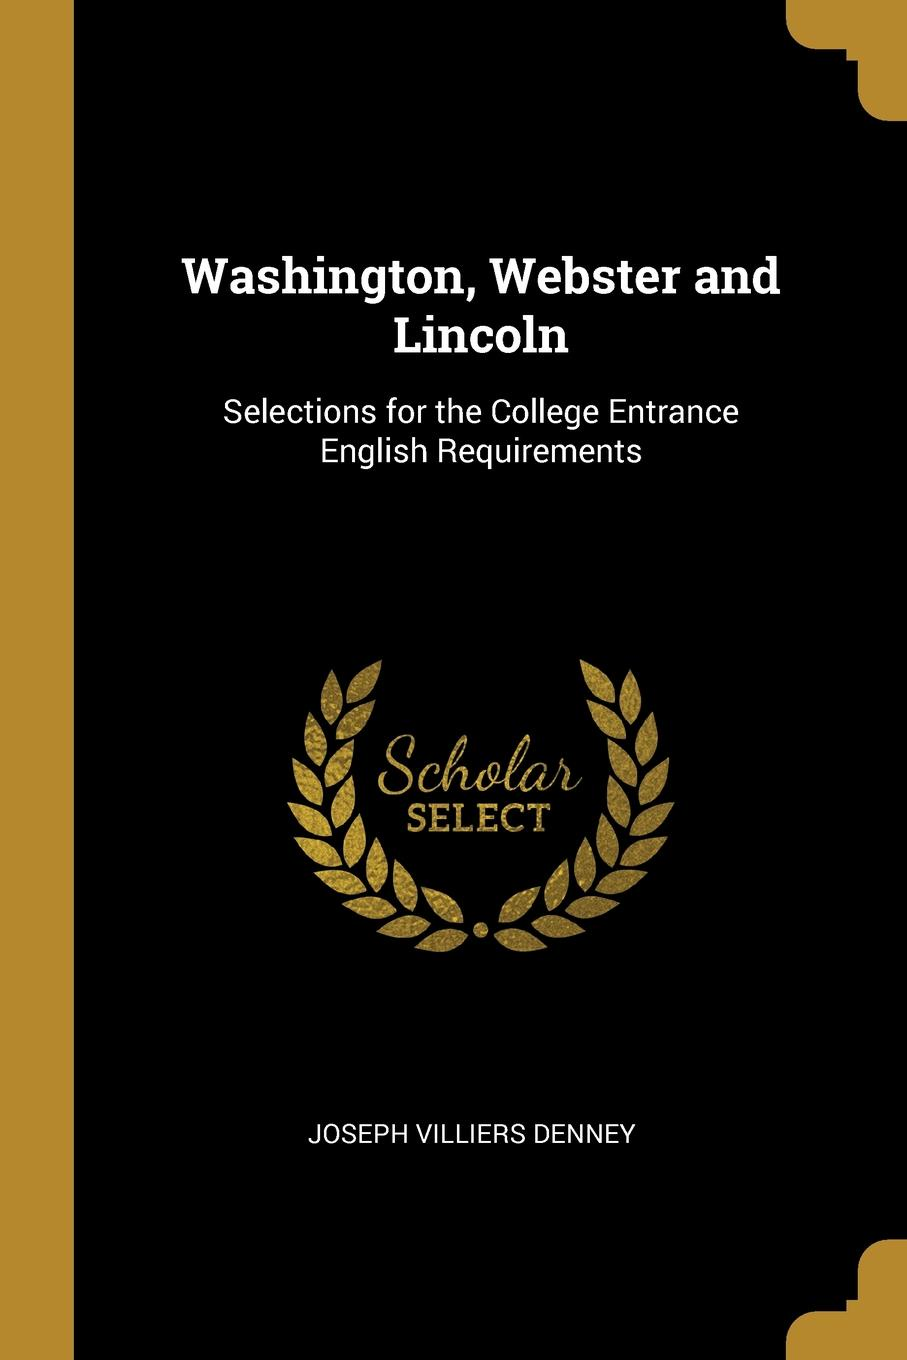 Joseph Villiers Denney. Washington, Webster and Lincoln. Selections for the College Entrance English Requirements